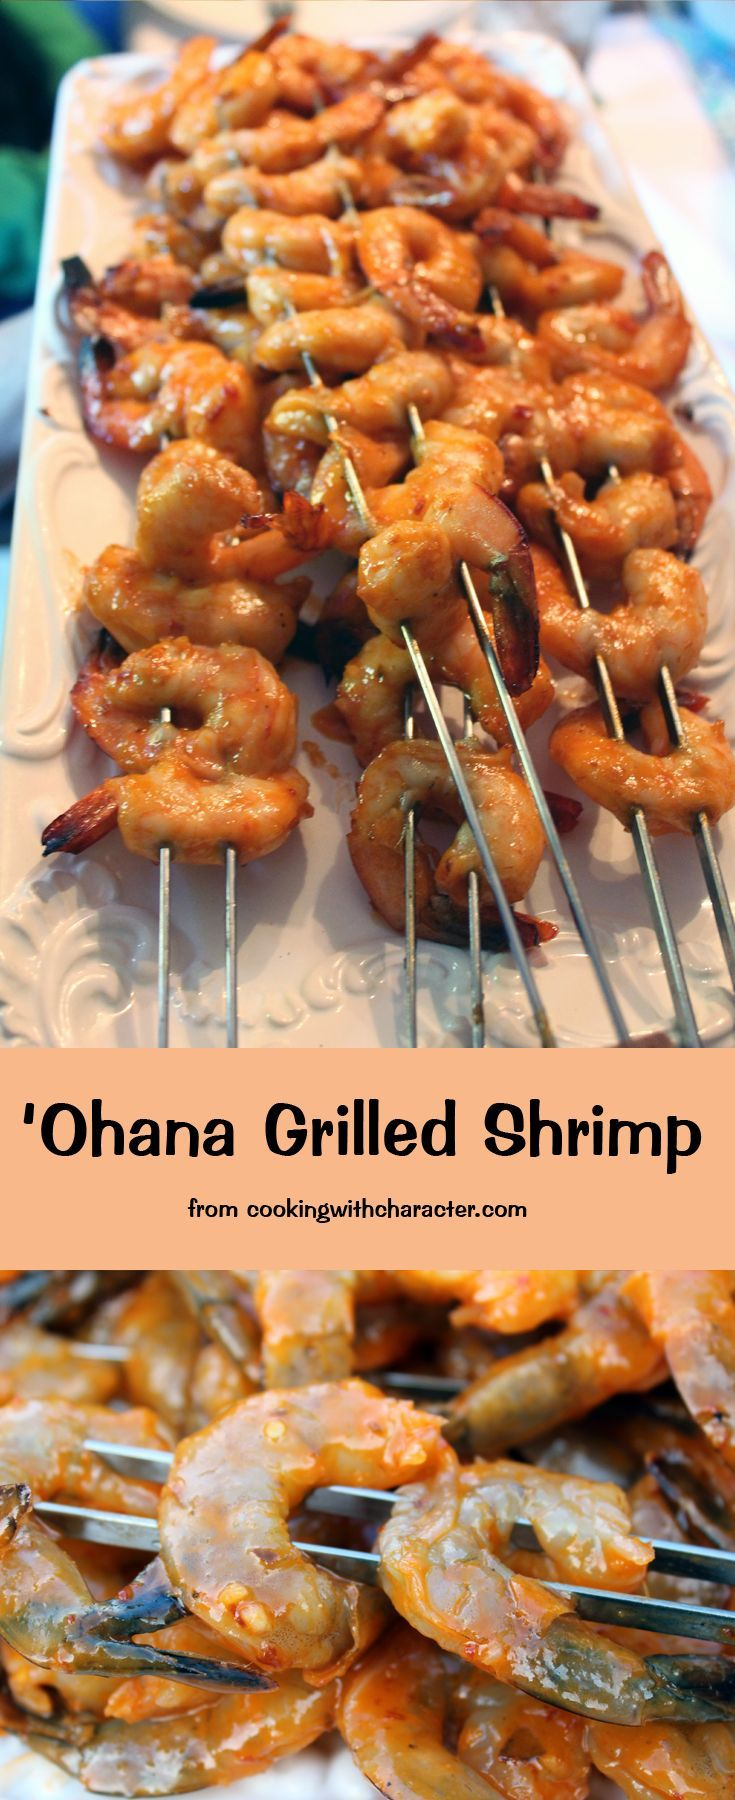 'Ohana Grilled Shrimp - Cooking with Character